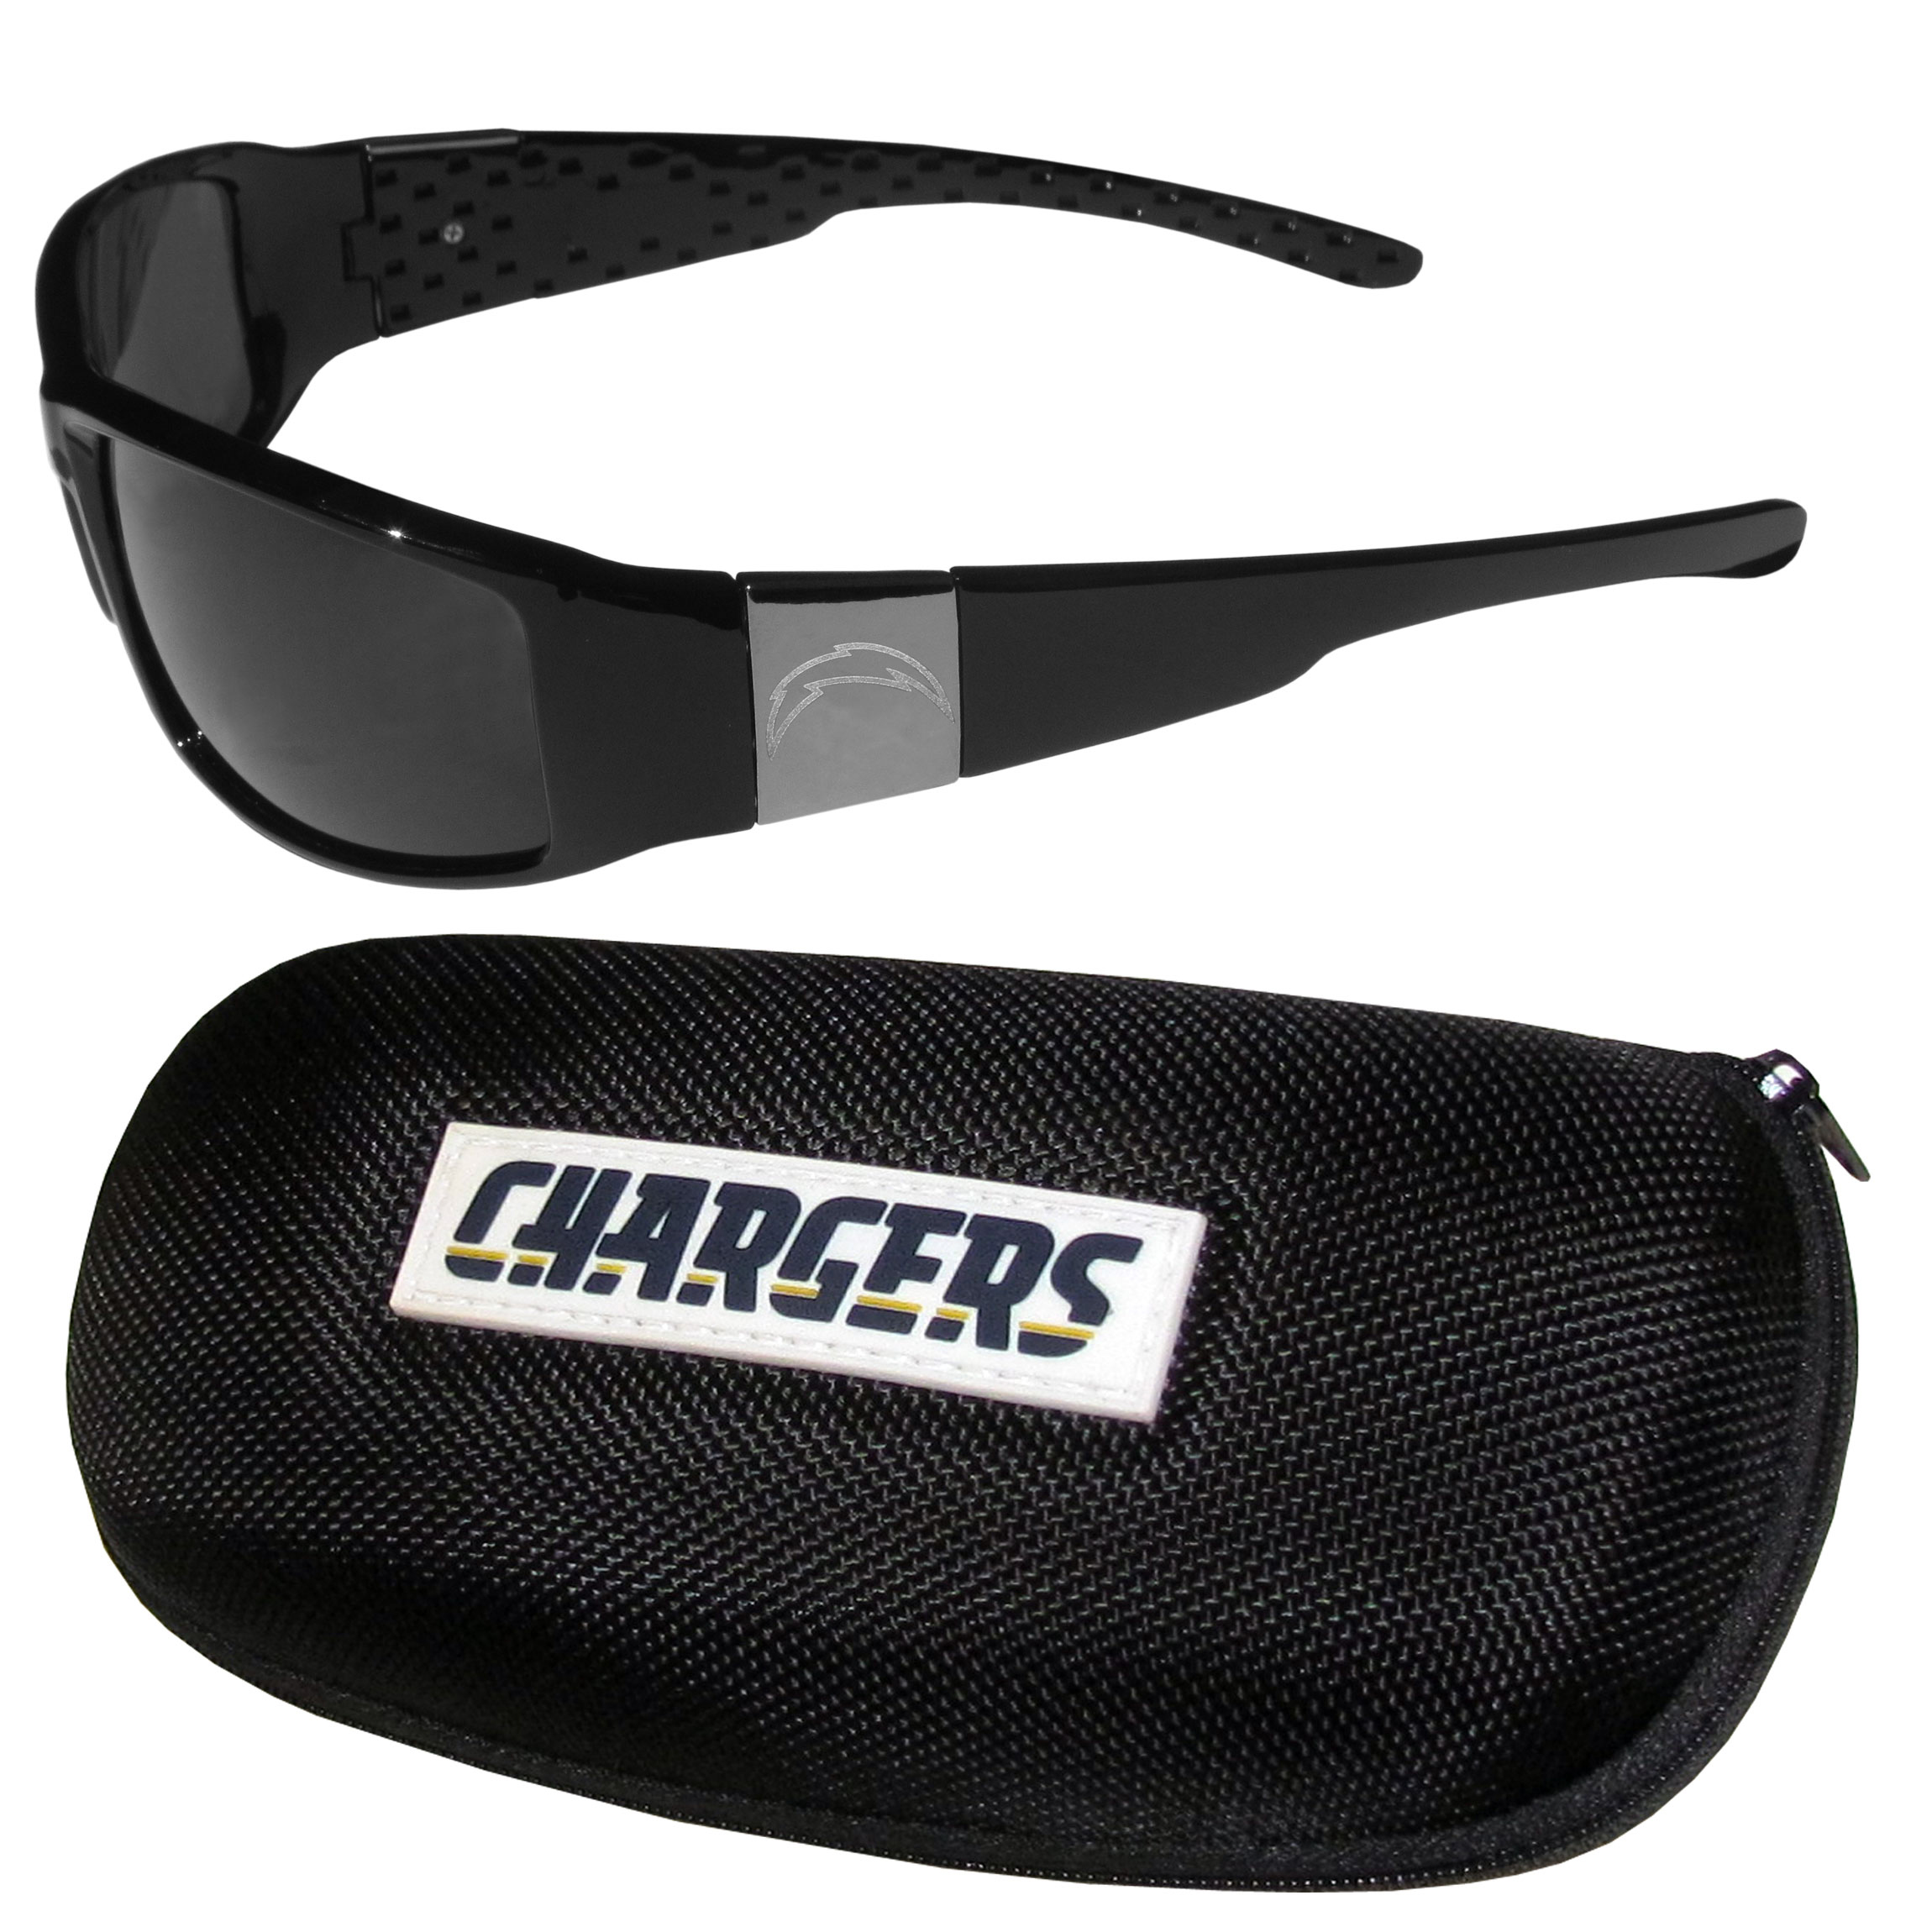 Los Angeles Chargers Chrome Wrap Sunglasses and Zippered Carrying Case - This set includes our sleek and stylish Los Angeles Chargers chrome wrap sunglasses and our hard shell, zippered carrying case. The sunglasses feature etched team logos on each arm and 100% UVA/UVB protection. The case features a large and colorful team emblem.